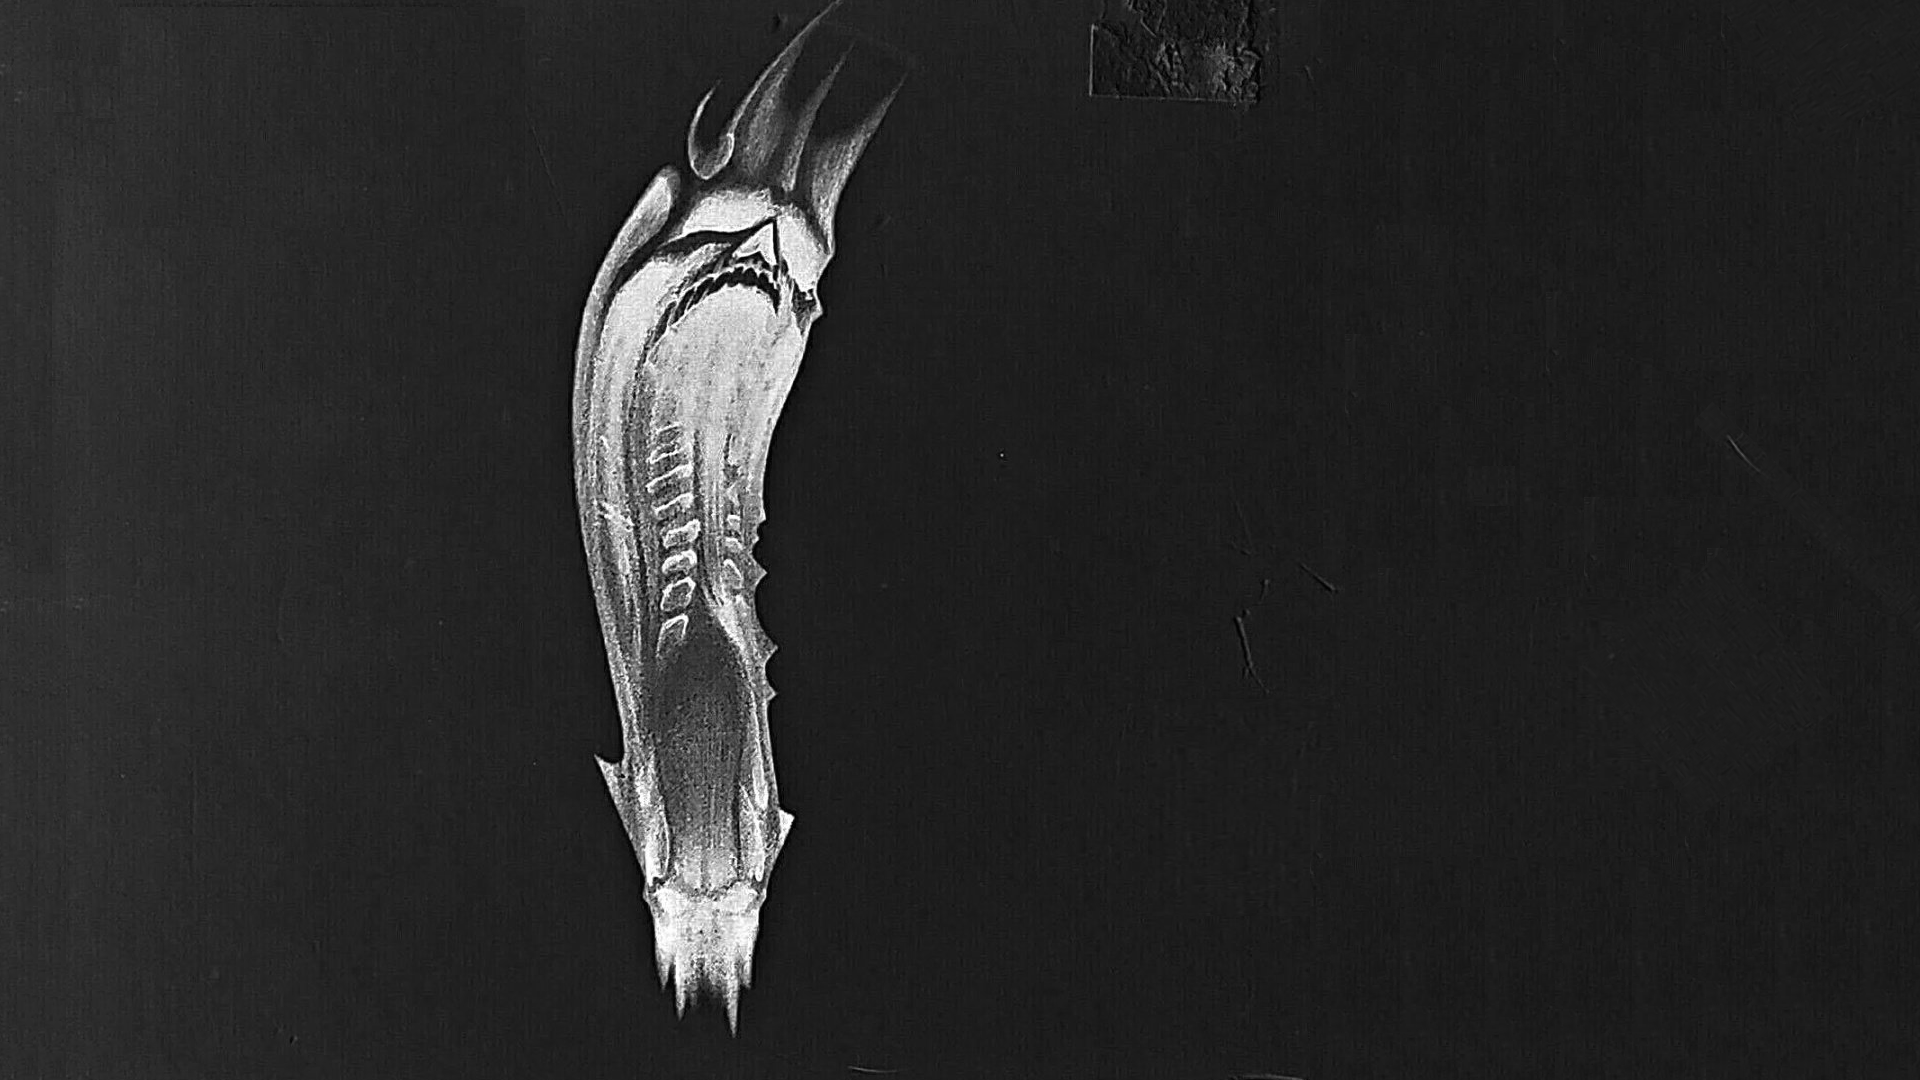 Master levels wallpaper black and white inverted.png